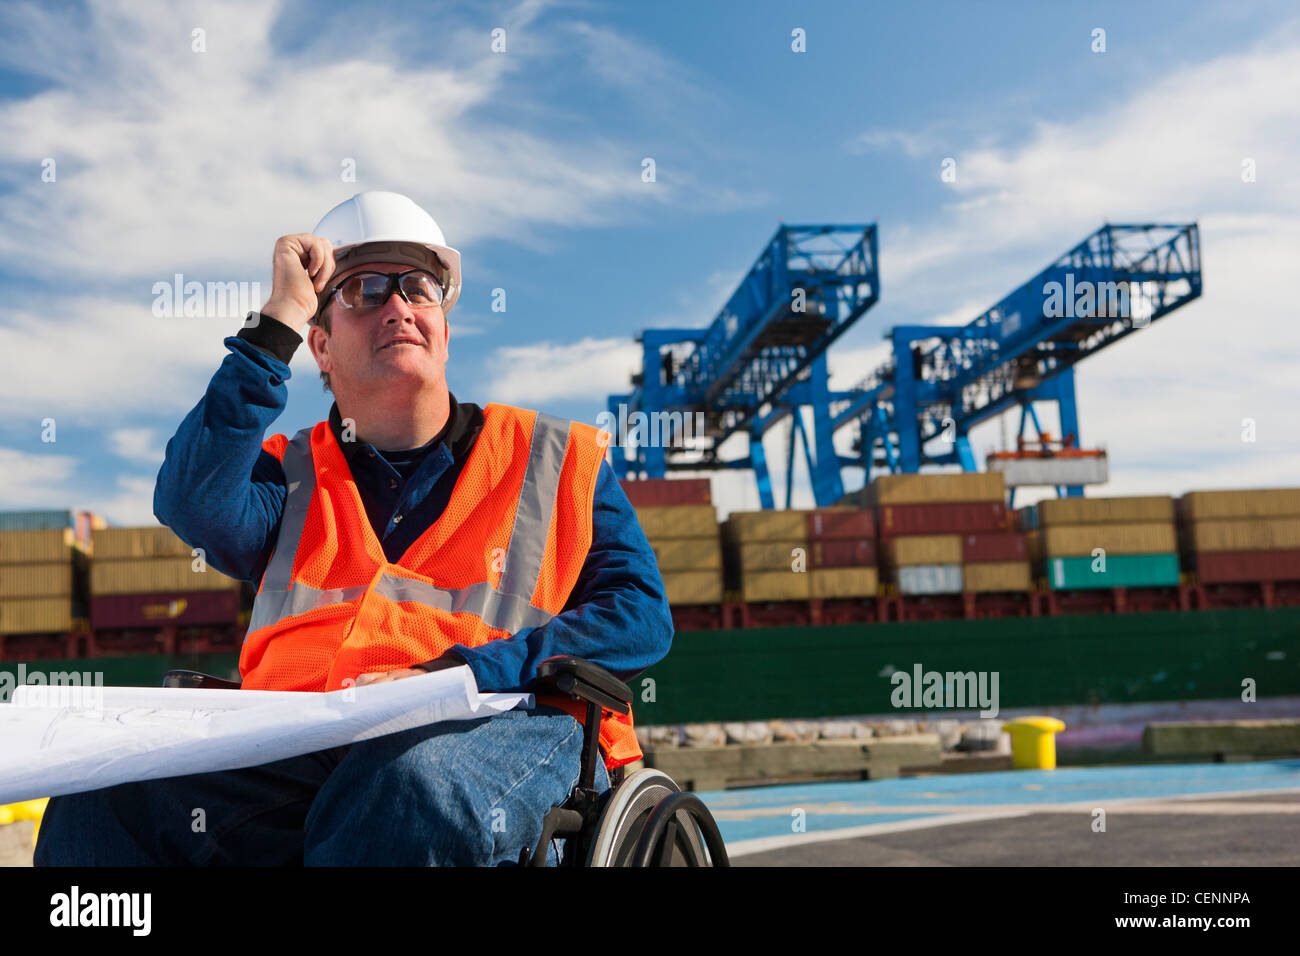 Transportation engineer in a wheelchair studying plans at shipping port - Stock Image